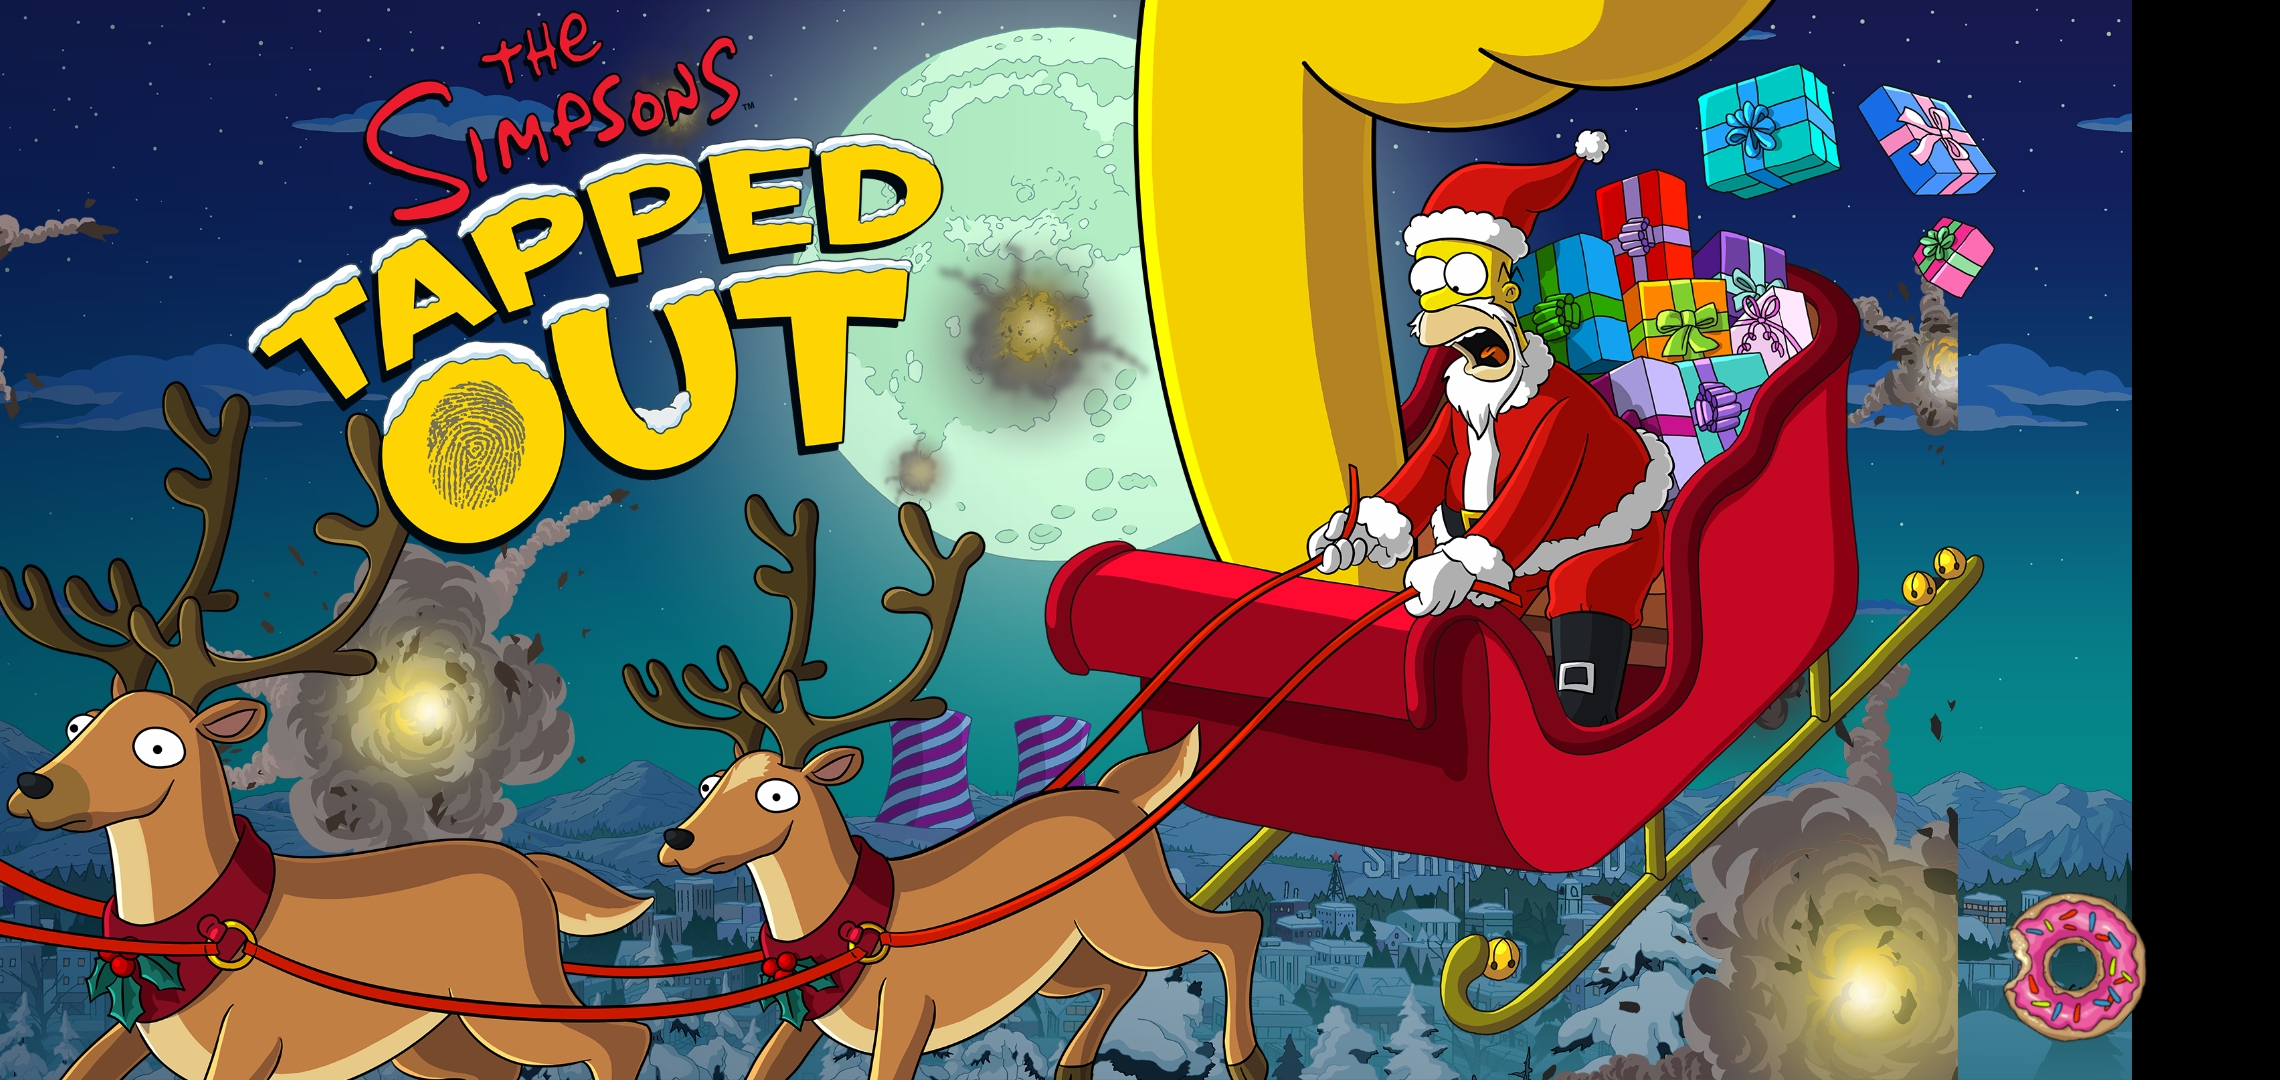 Simpsons Tapped Out Christmas Update 2021 Christmas Update Is Coming The Simpsons Tapped Out Addictsall Things The Simpsons Tapped Out For The Tapped Out Addict In All Of Us